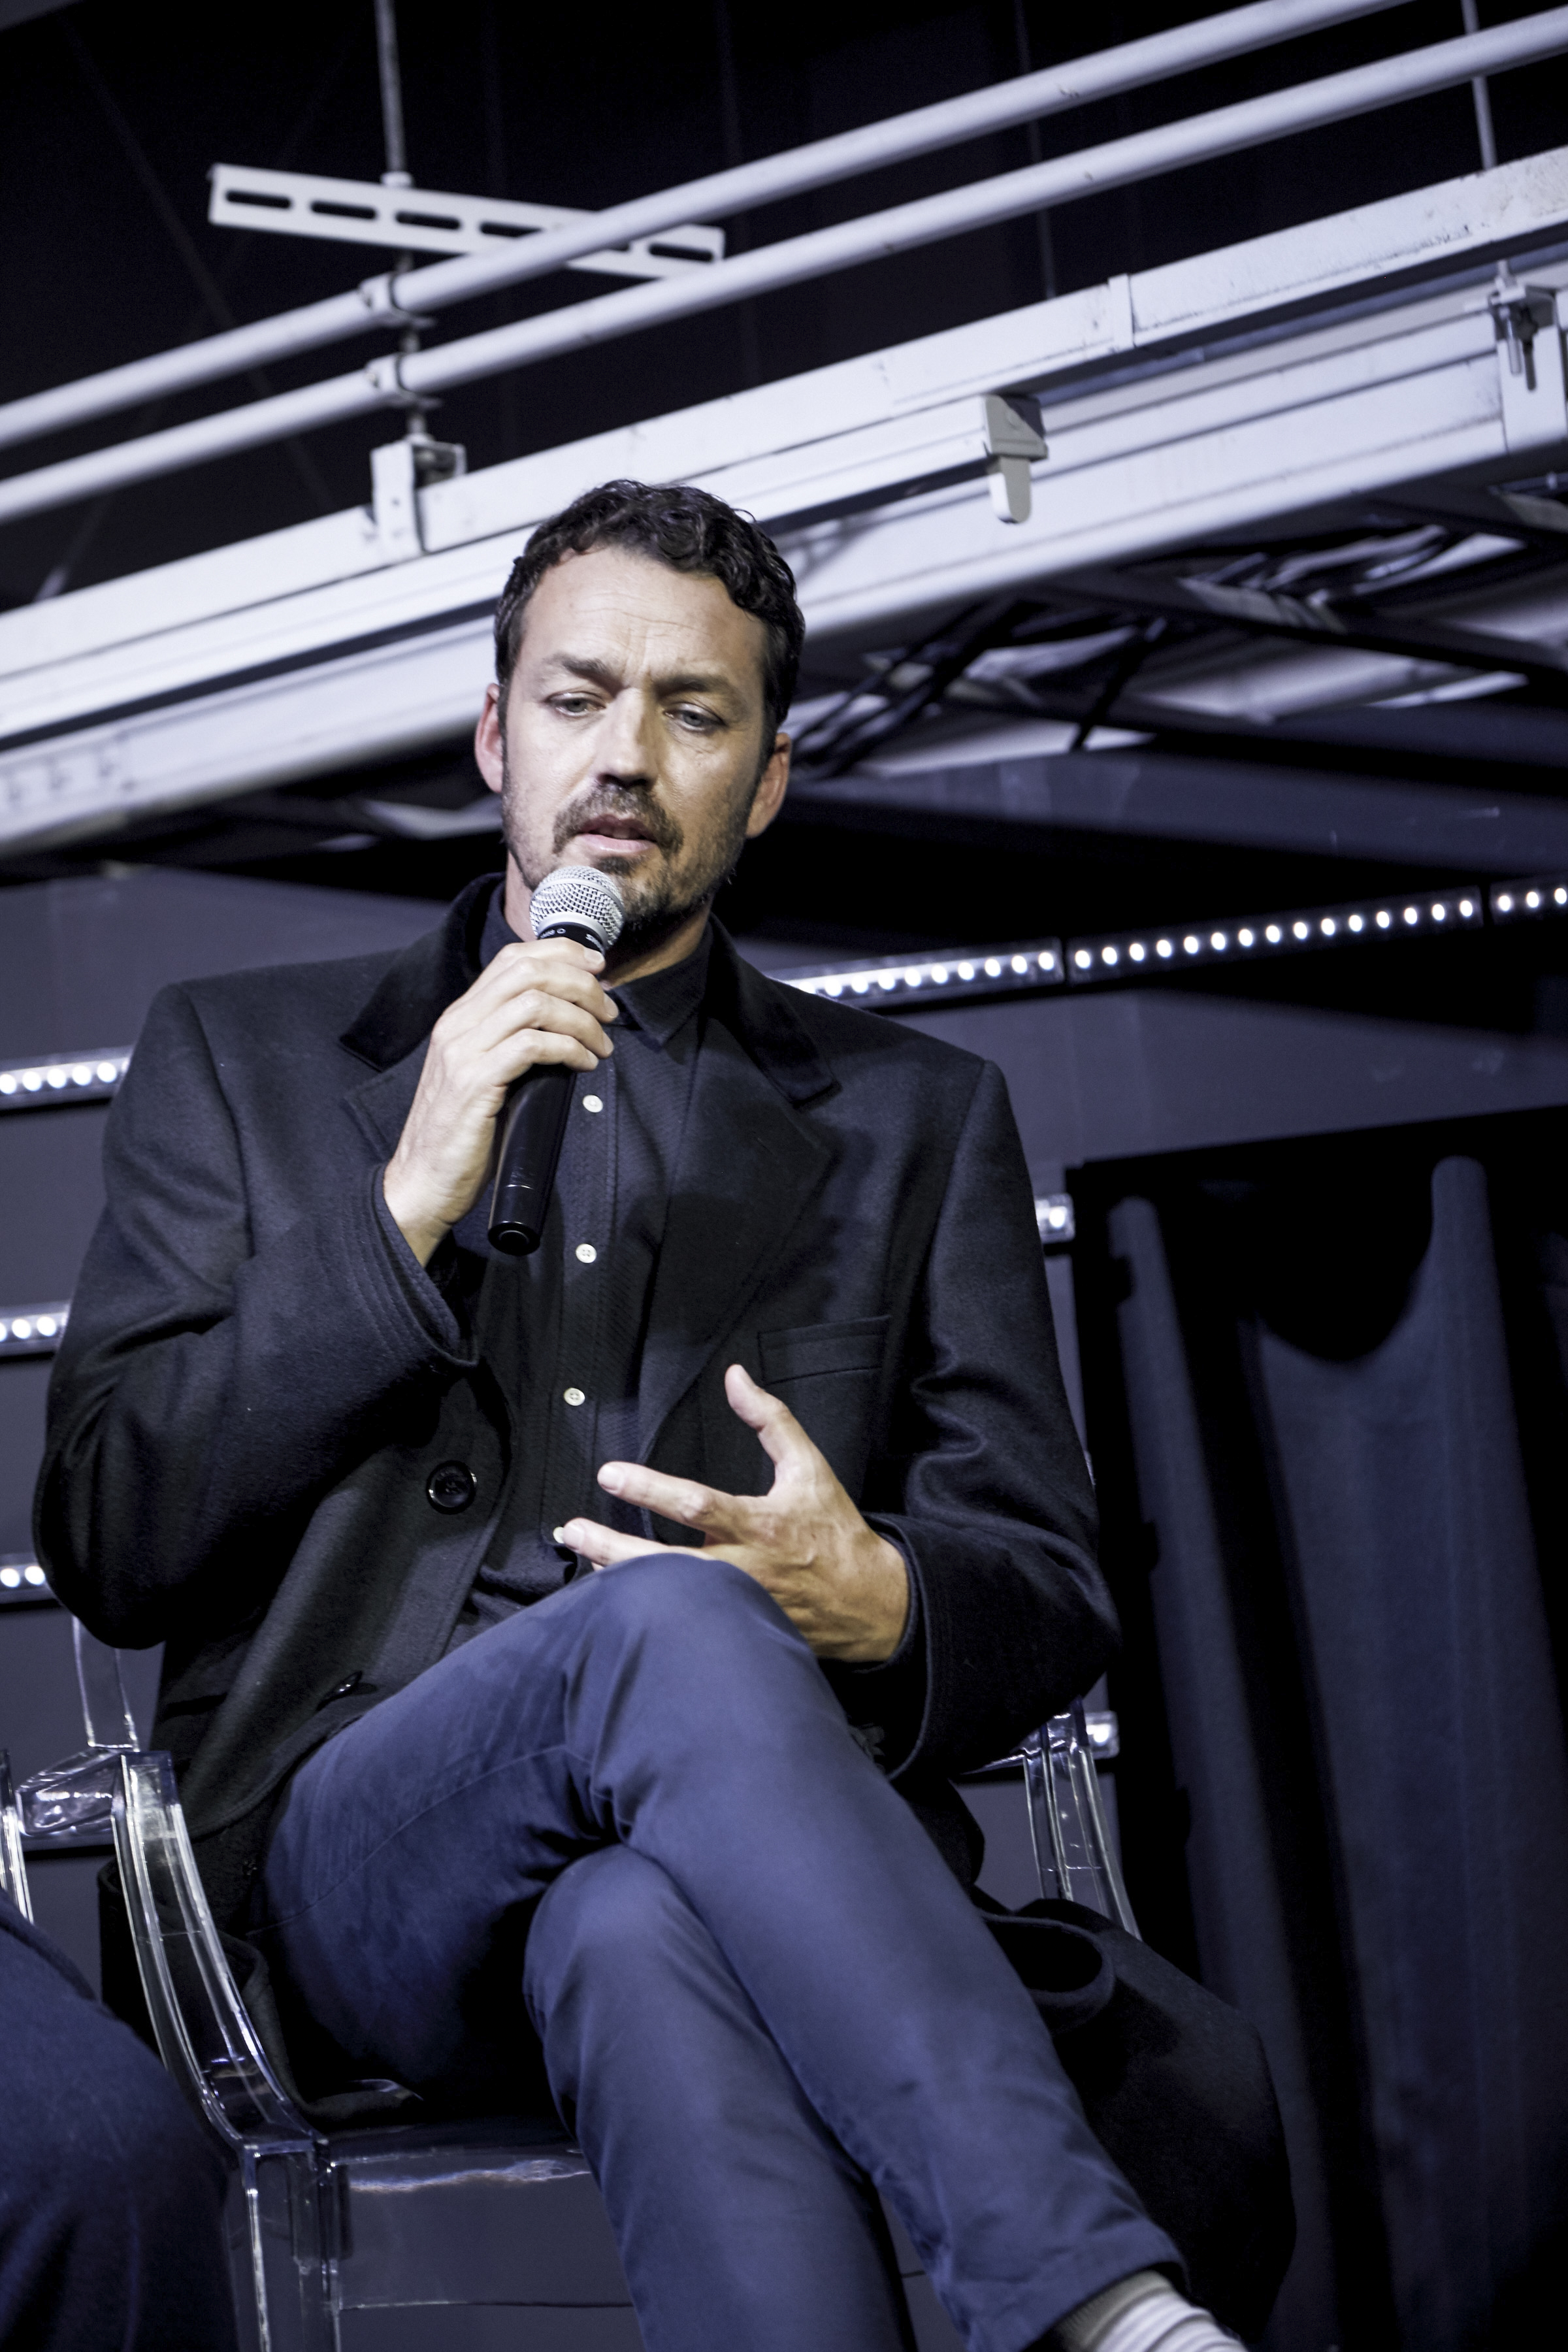 Rupert Sanders on stage during the Ghost in the Shell Fan Event at Tabloid in Tokyo, Japan November 13, 2016